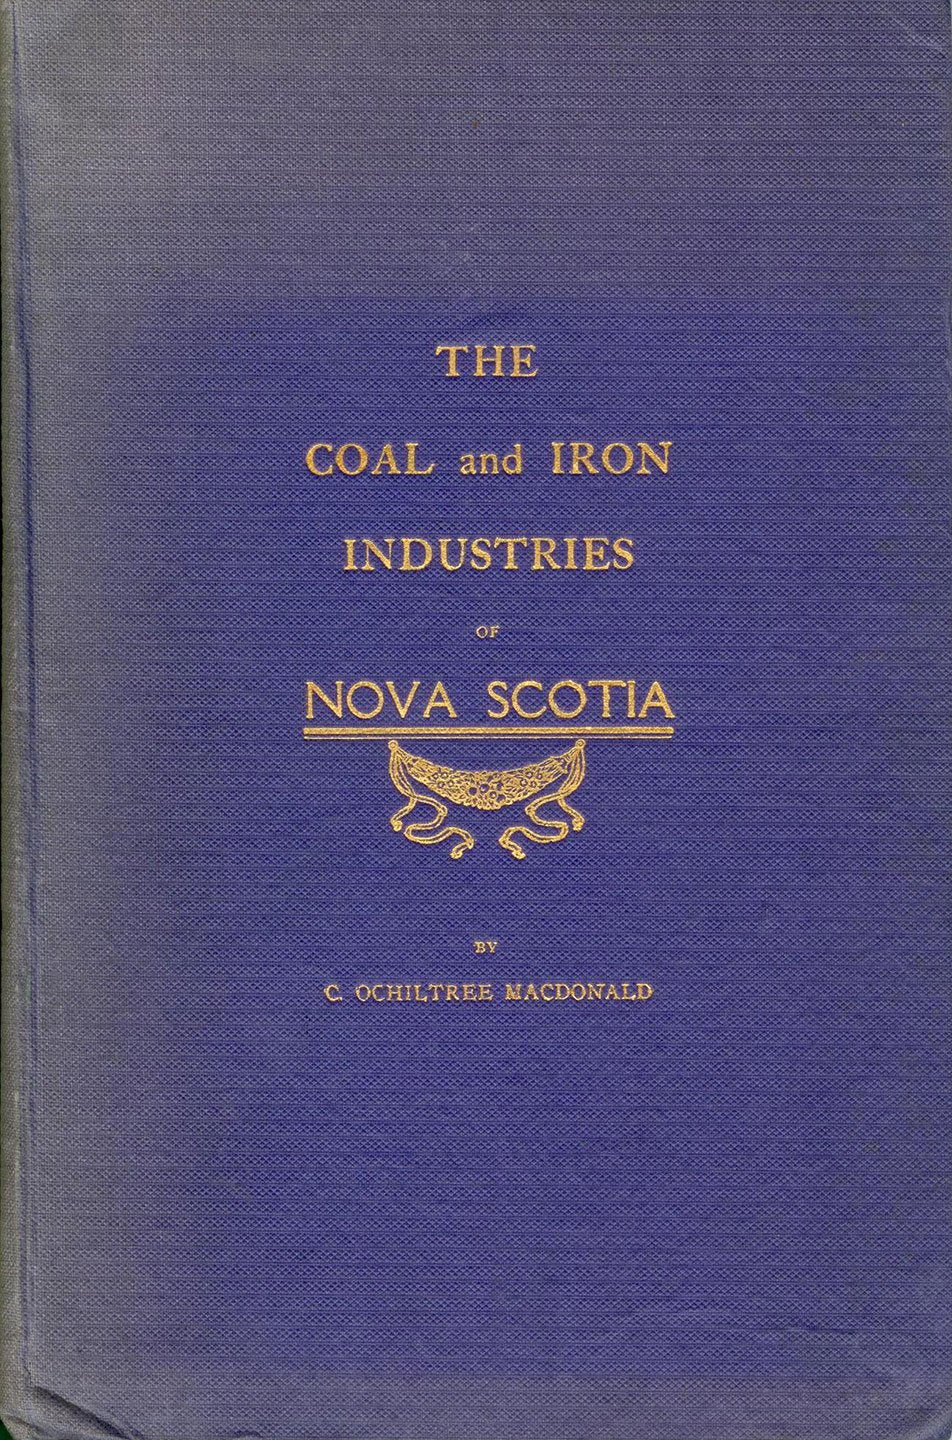 The Coal and Iron Industries of Nova Scotia